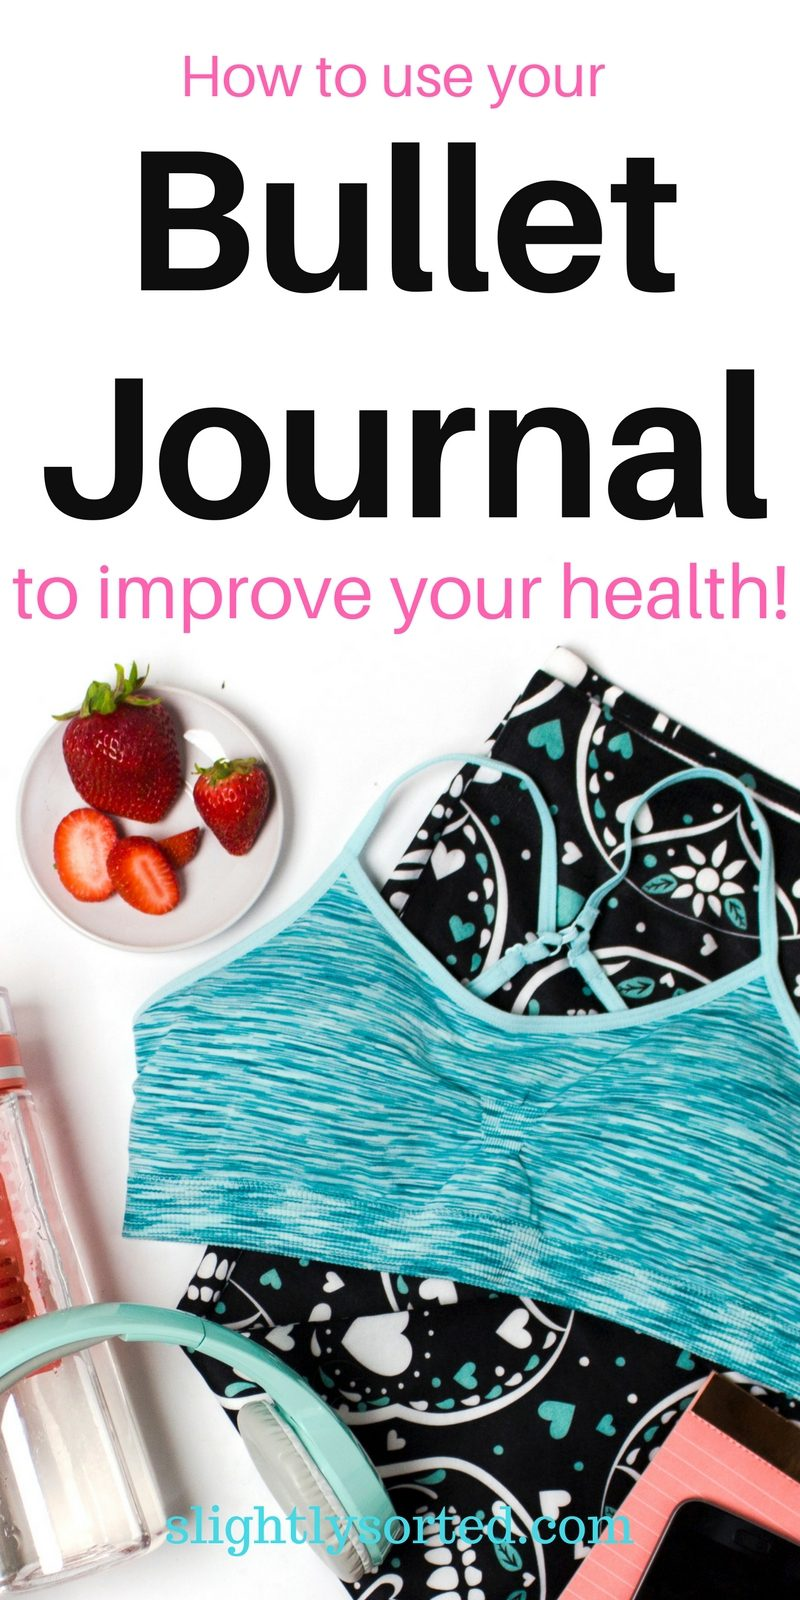 Bullet Journal for Health